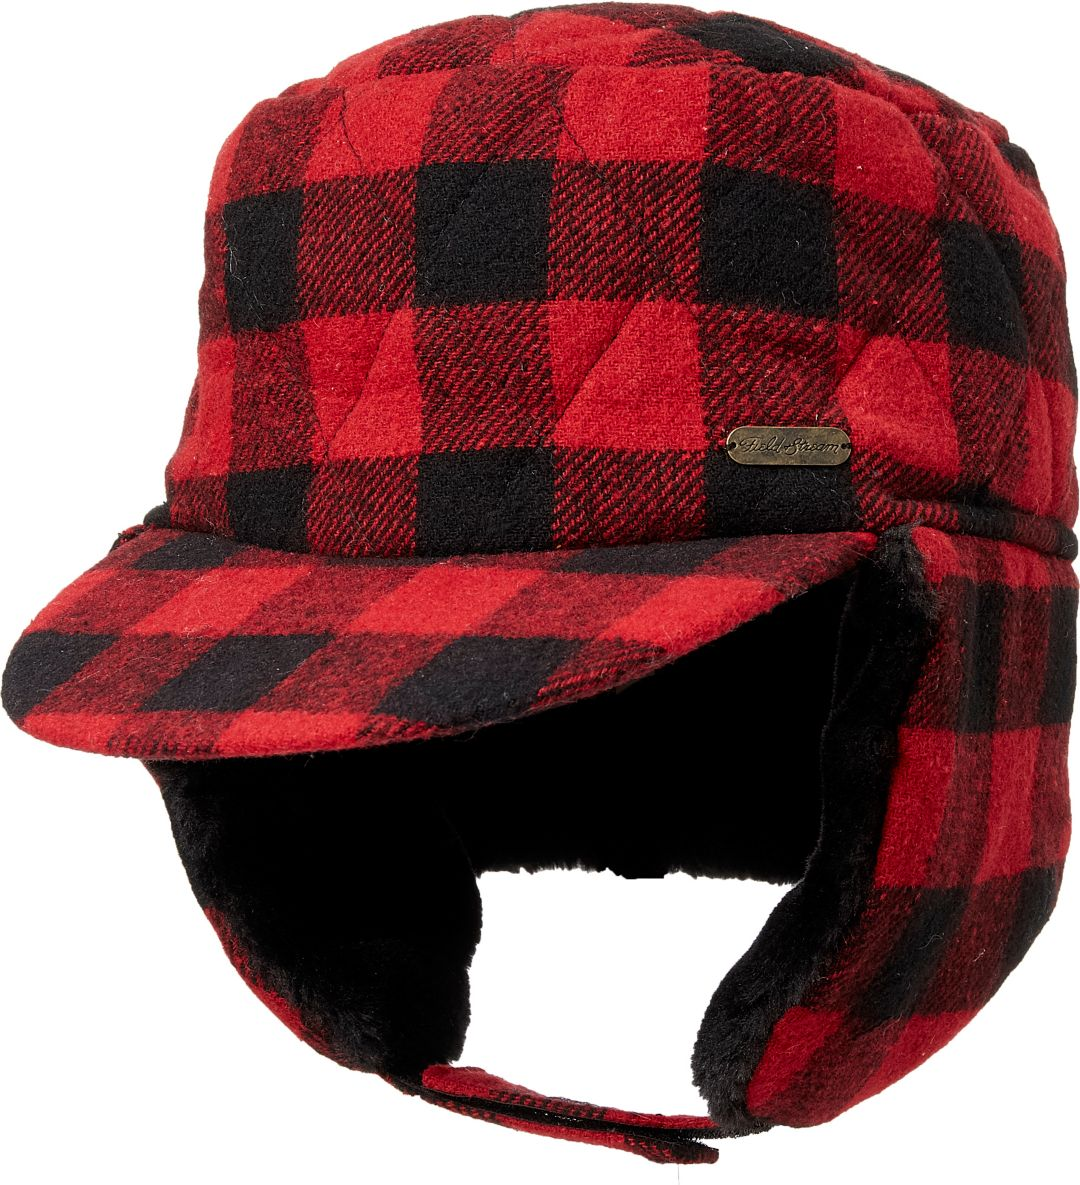 bce1728a1474d Field   Stream Men s Ear Flap Trapper Hat 1